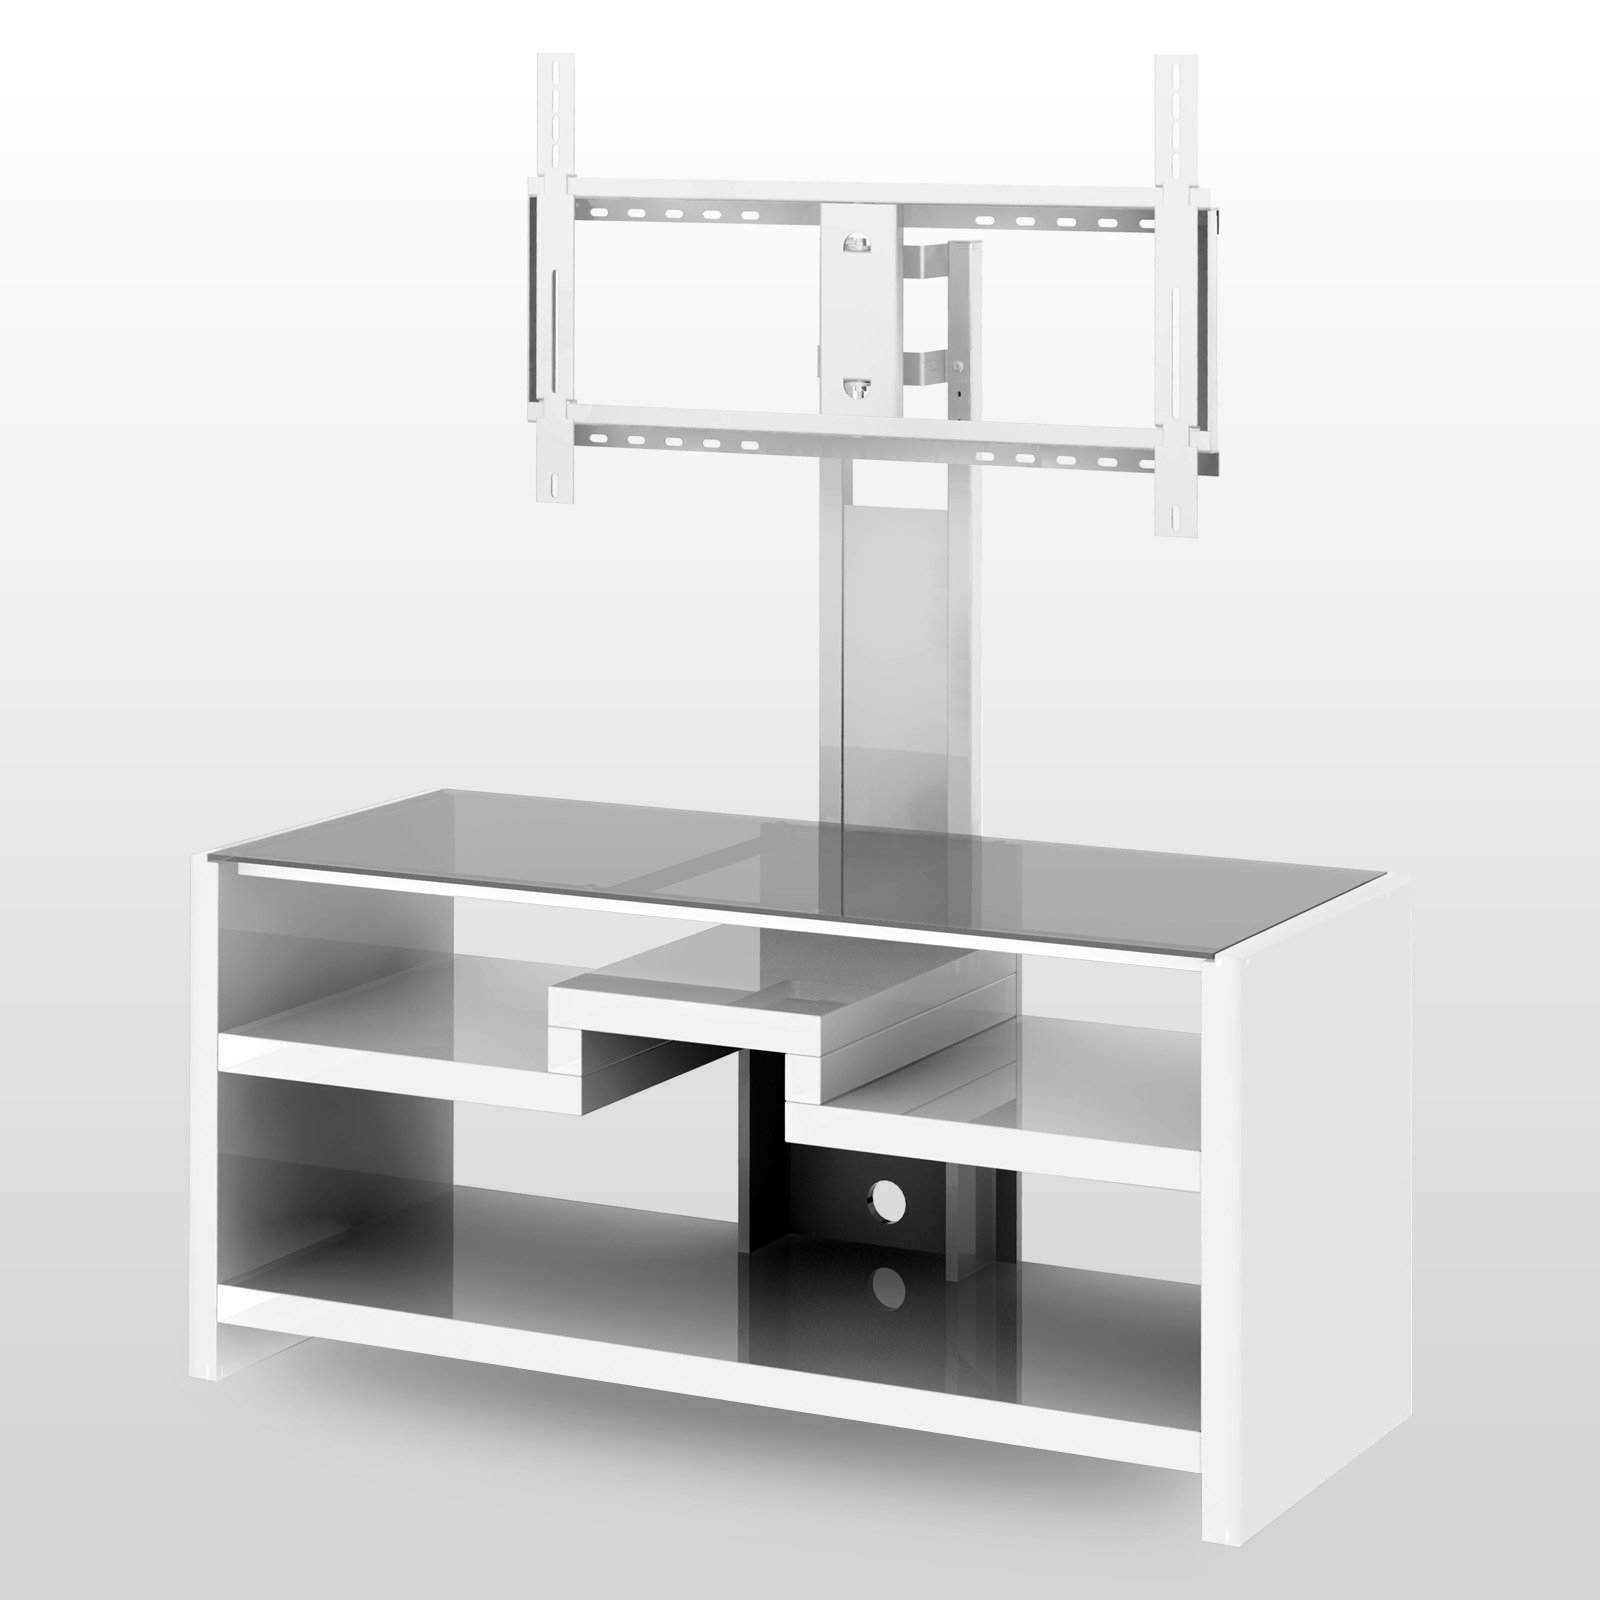 Latest Contemporary White Glass Flat Screen Tv Stand With Mount Of Stylish Intended For White Tv Stands For Flat Screens (Gallery 2 of 20)